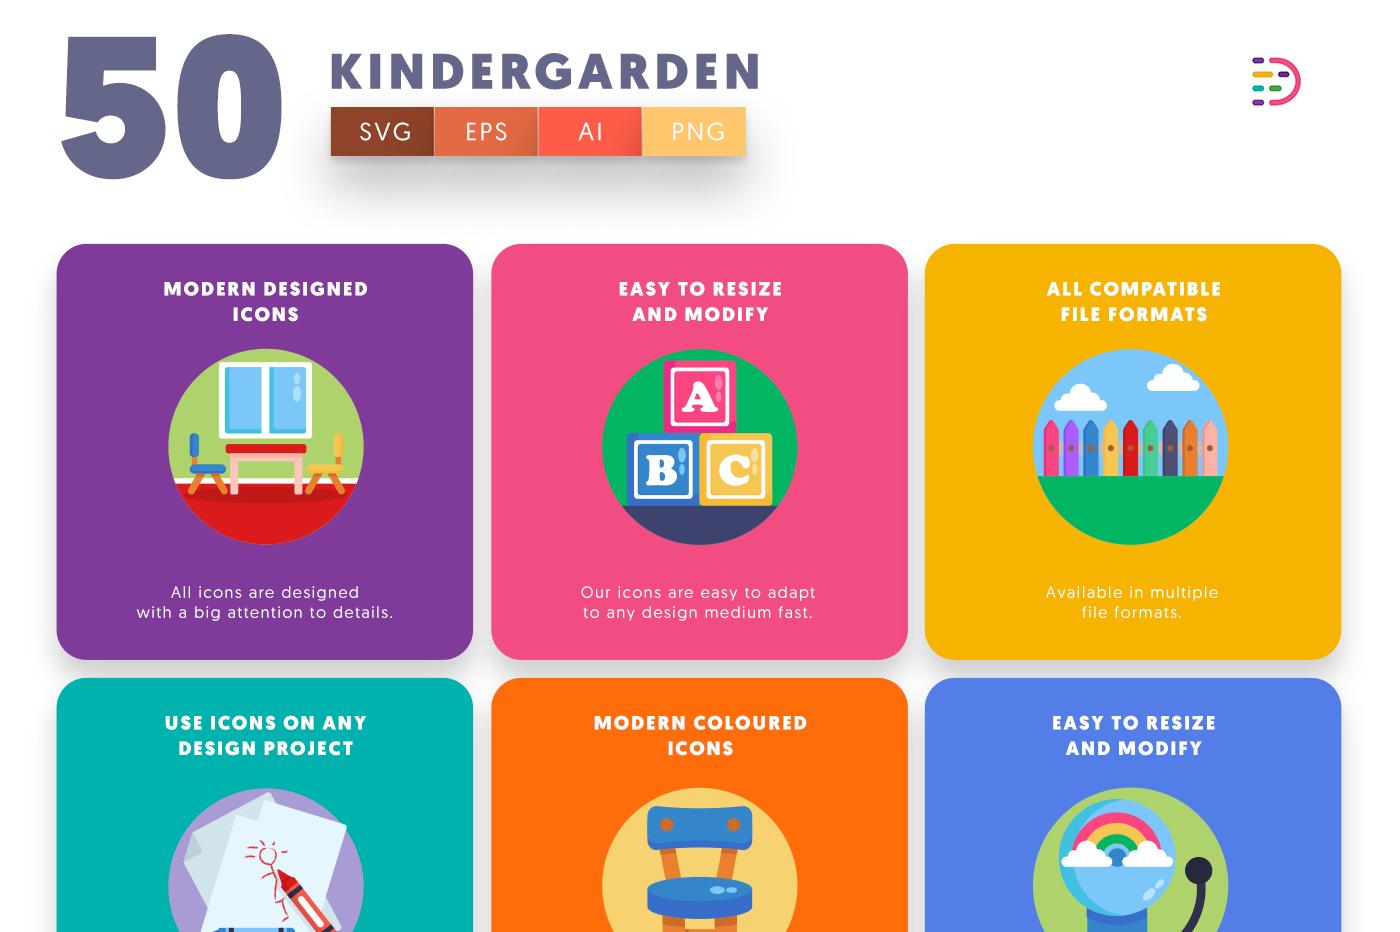 50 Kindergarden Icons with colored backgrounds